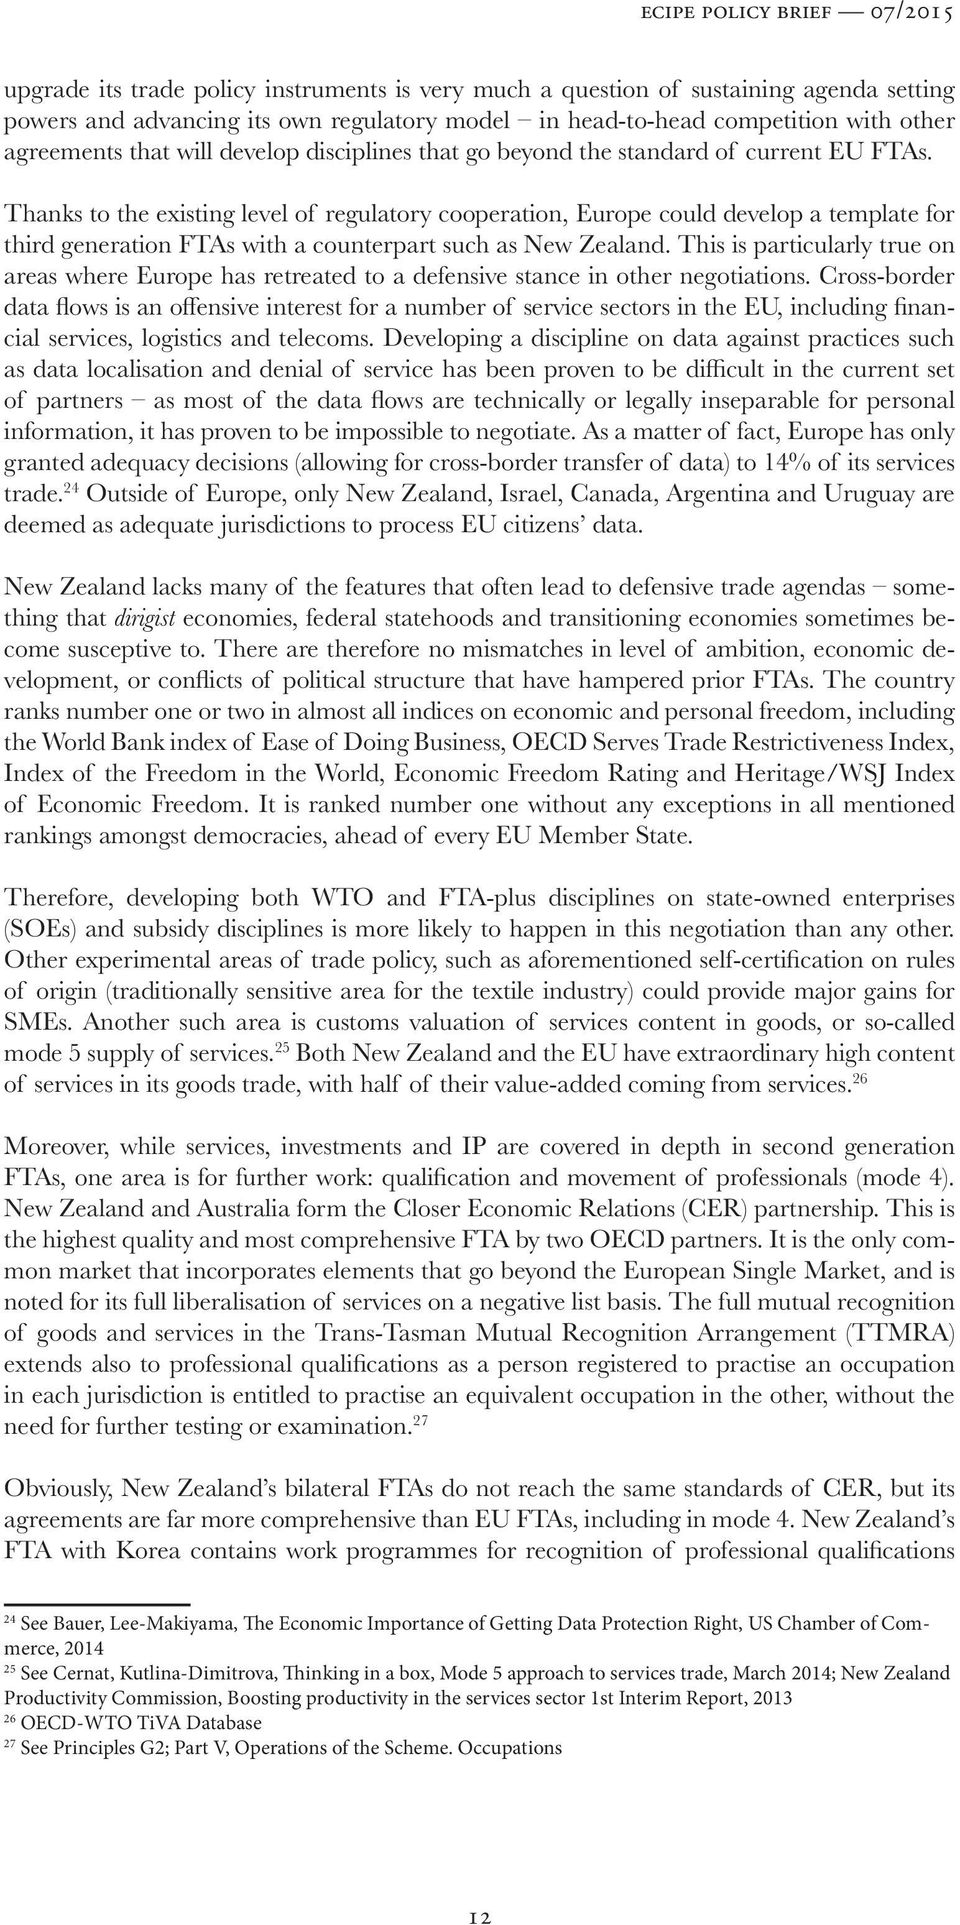 Thanks to the existing level of regulatory cooperation, Europe could develop a template for third generation FTAs with a counterpart such as New Zealand.